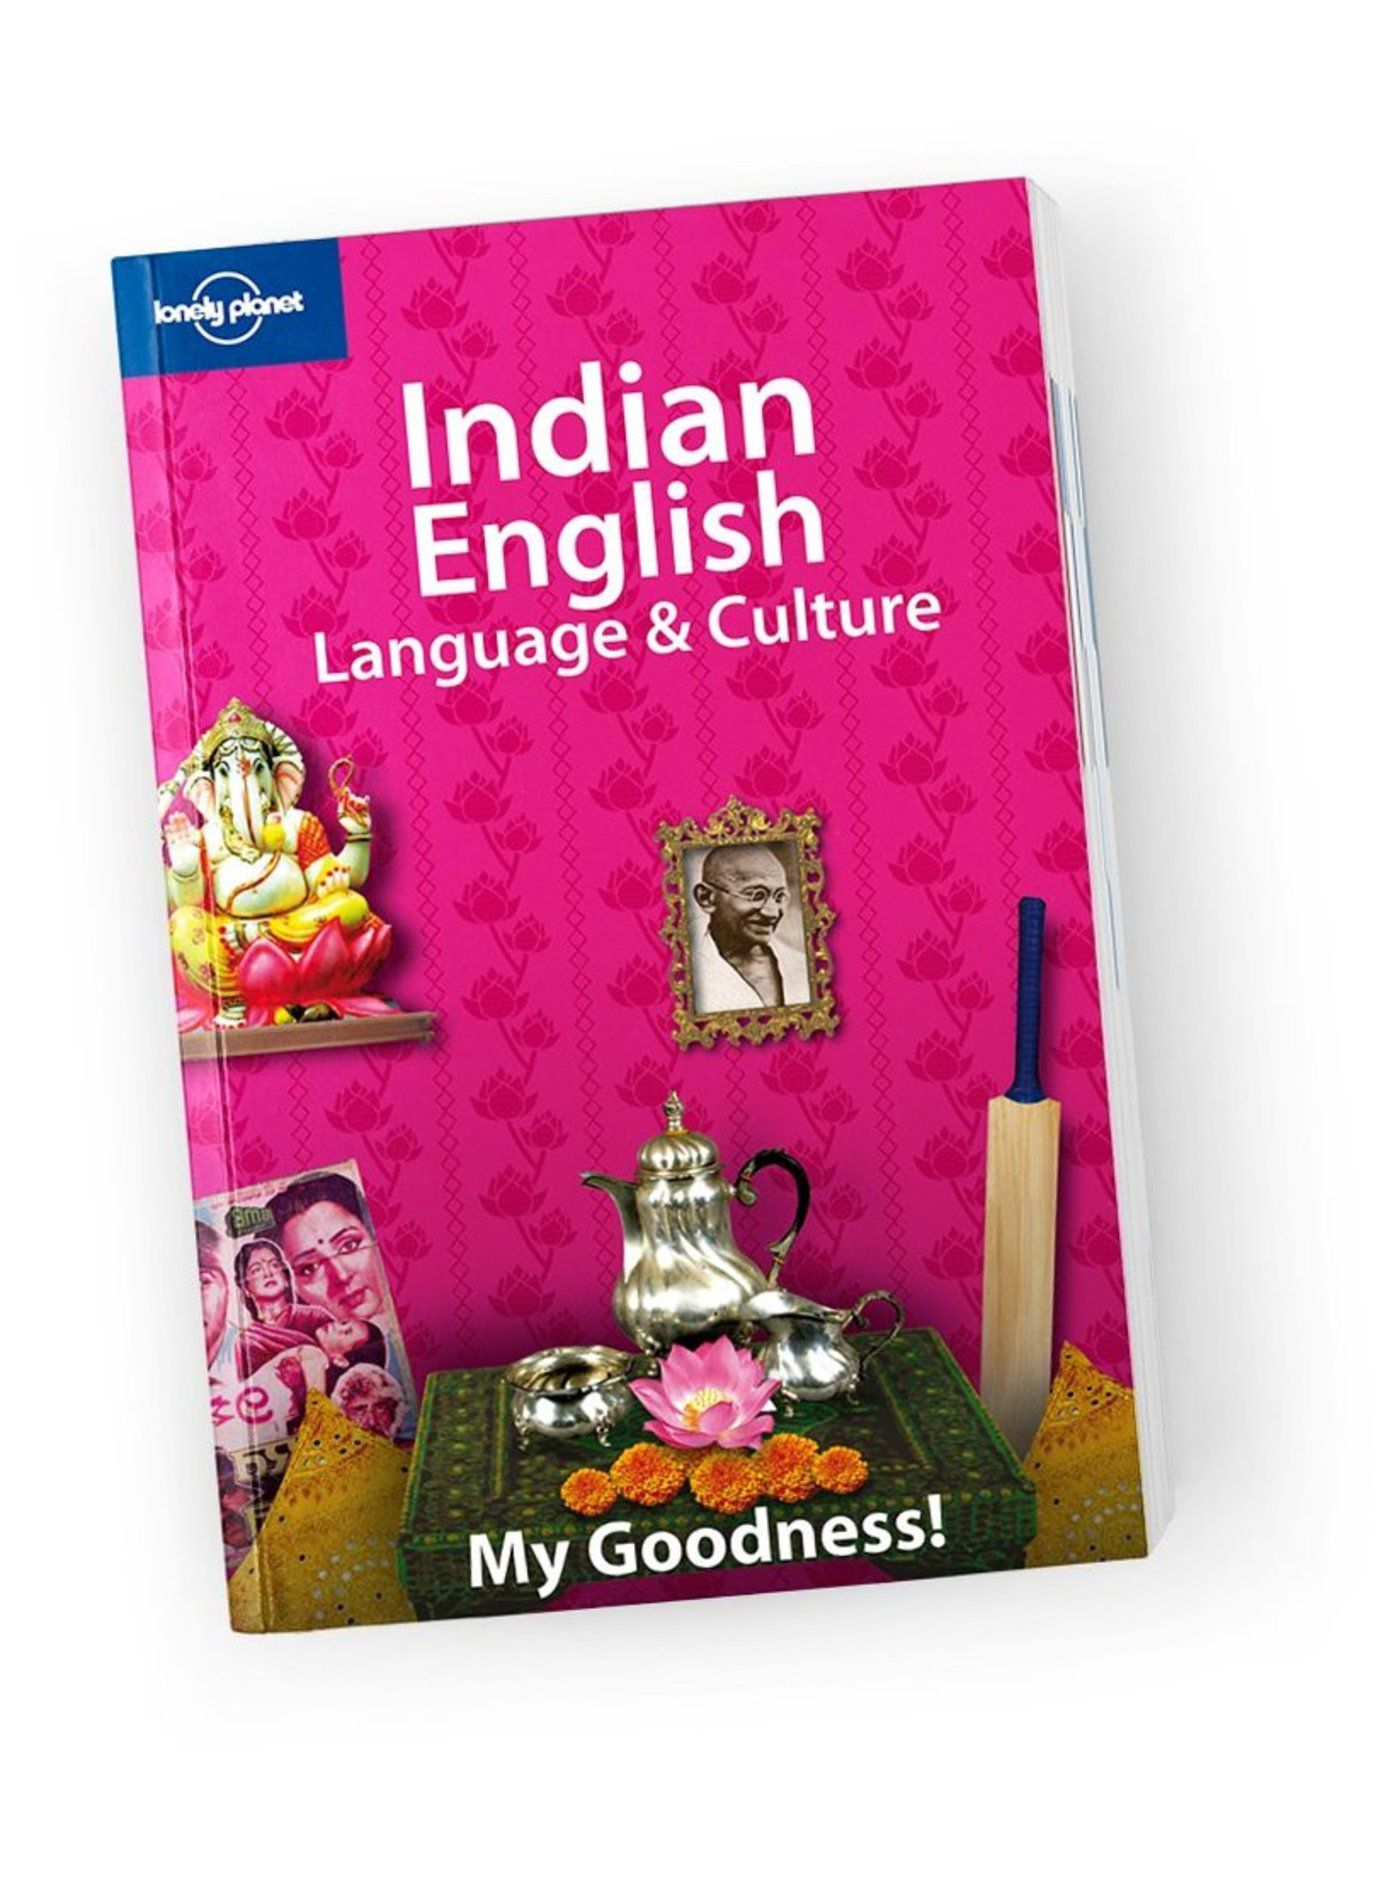 lonely planet guide to india